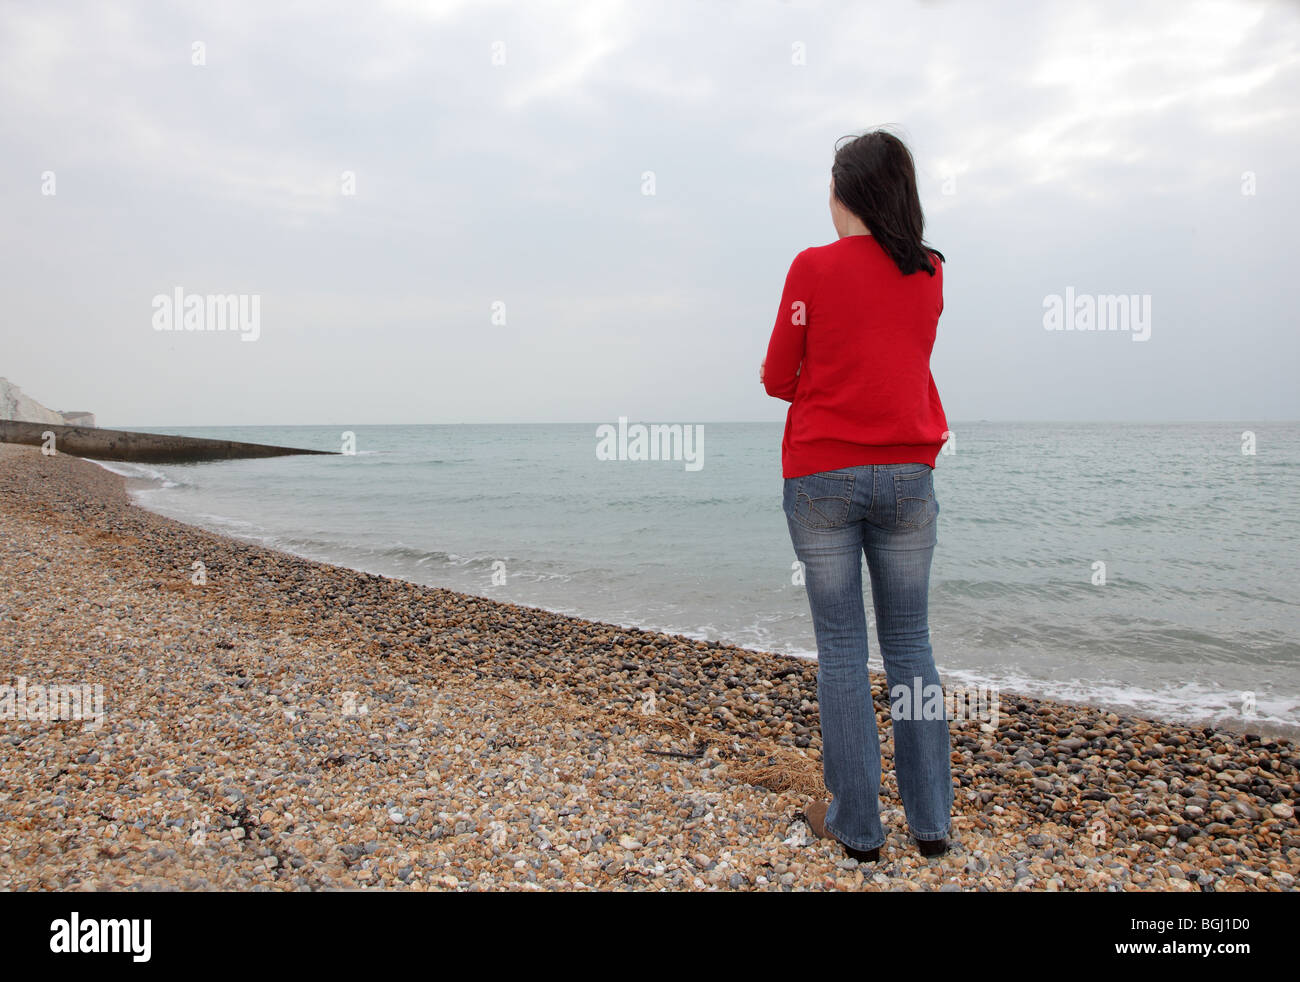 Woman standing on a beach wearing jeans and a red top, back view Stock Photo